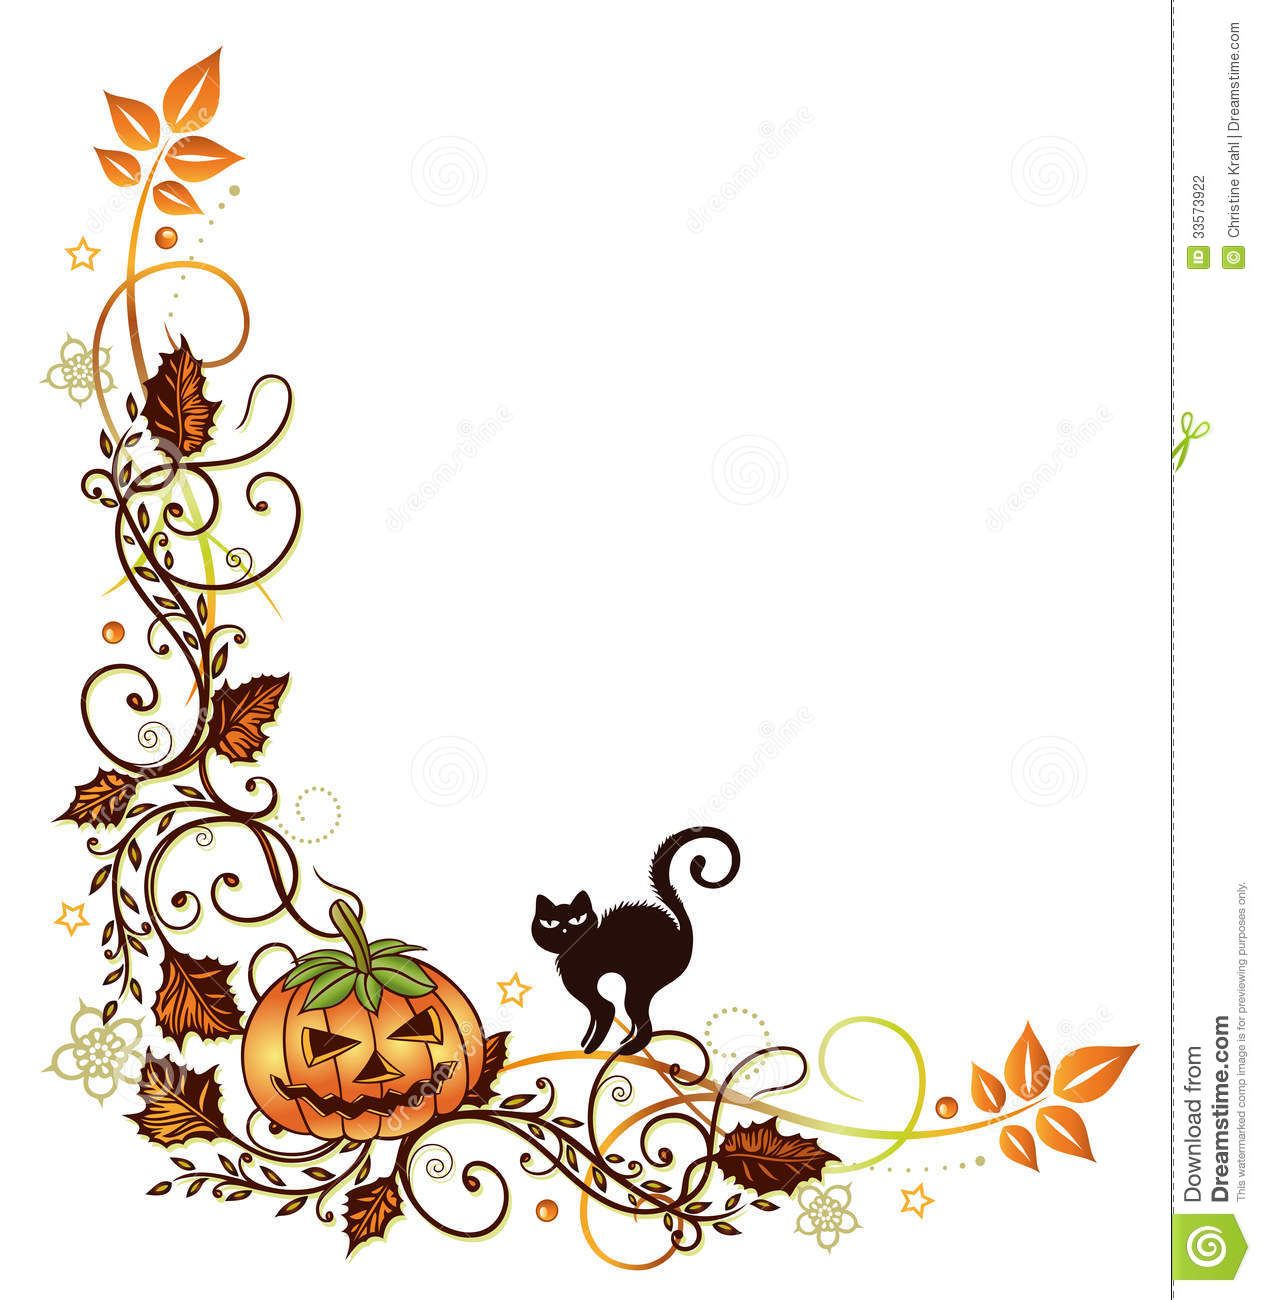 halloween border clipart free large images [ 1261 x 1300 Pixel ]